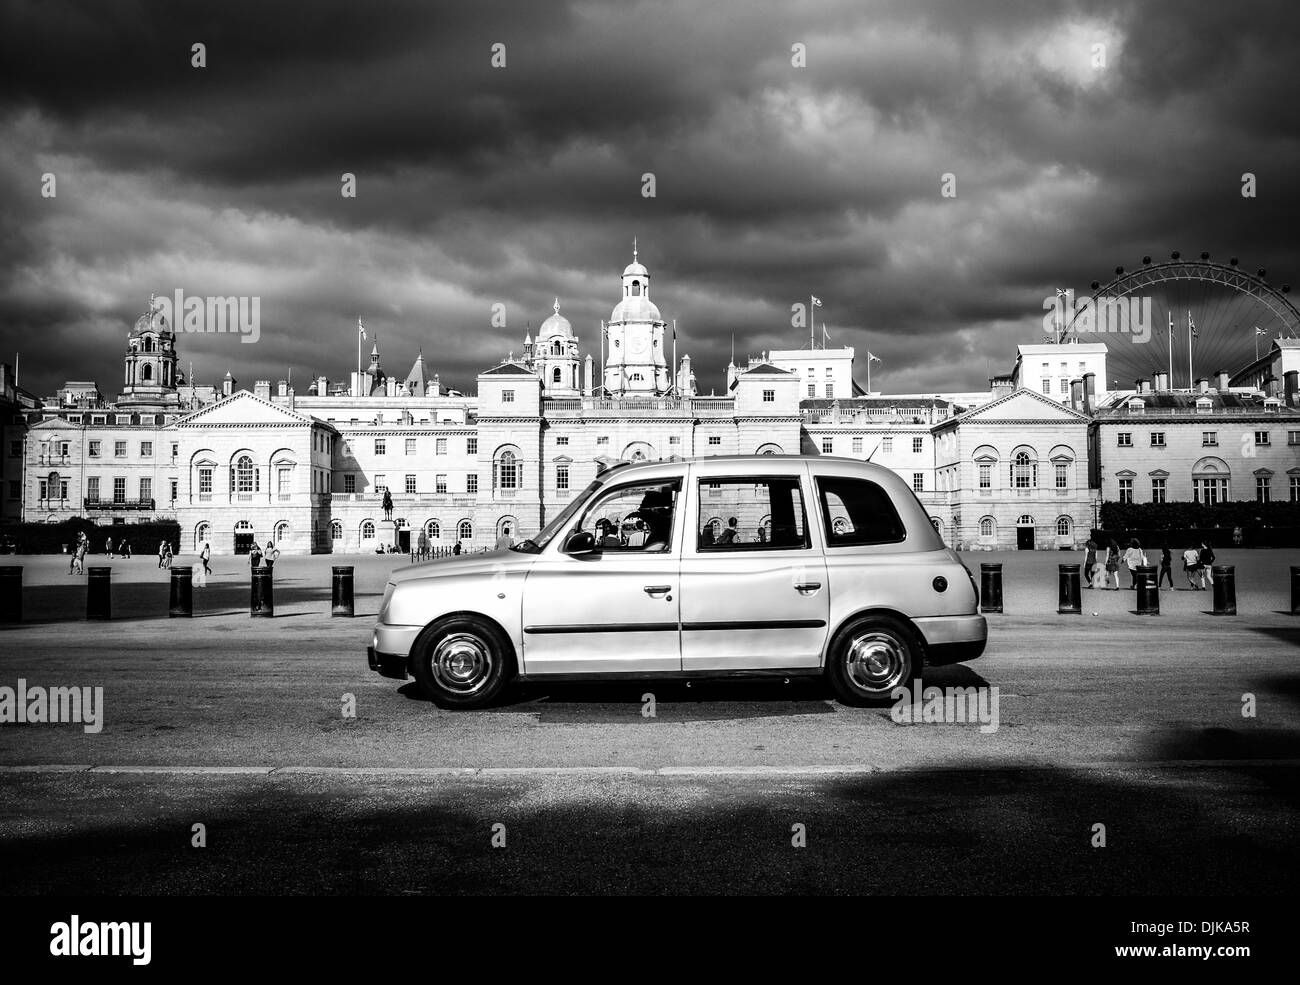 Taxi cab in front of Horse Guards Parade, London, England - Stock Image